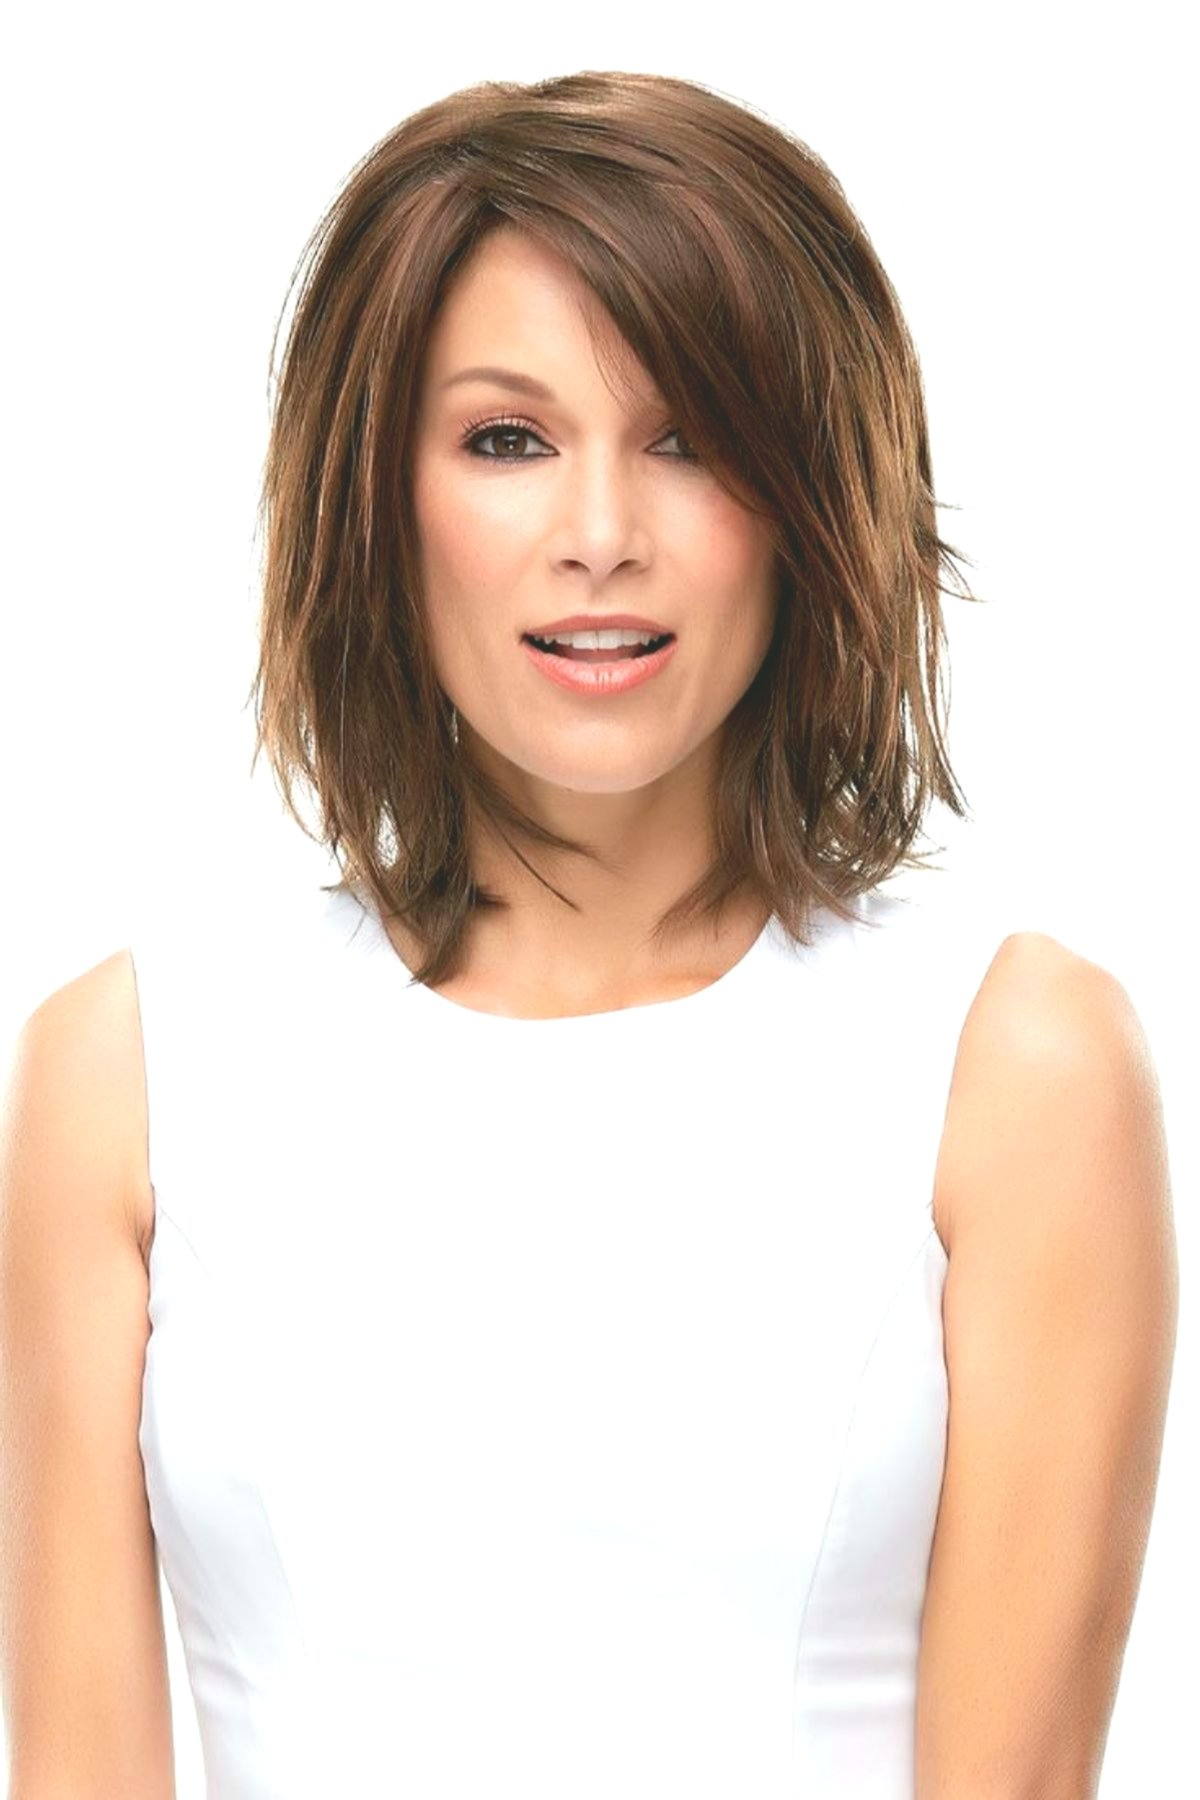 terribly cool hairstyles step-cut image-Amazing hairstyles step-cut photo